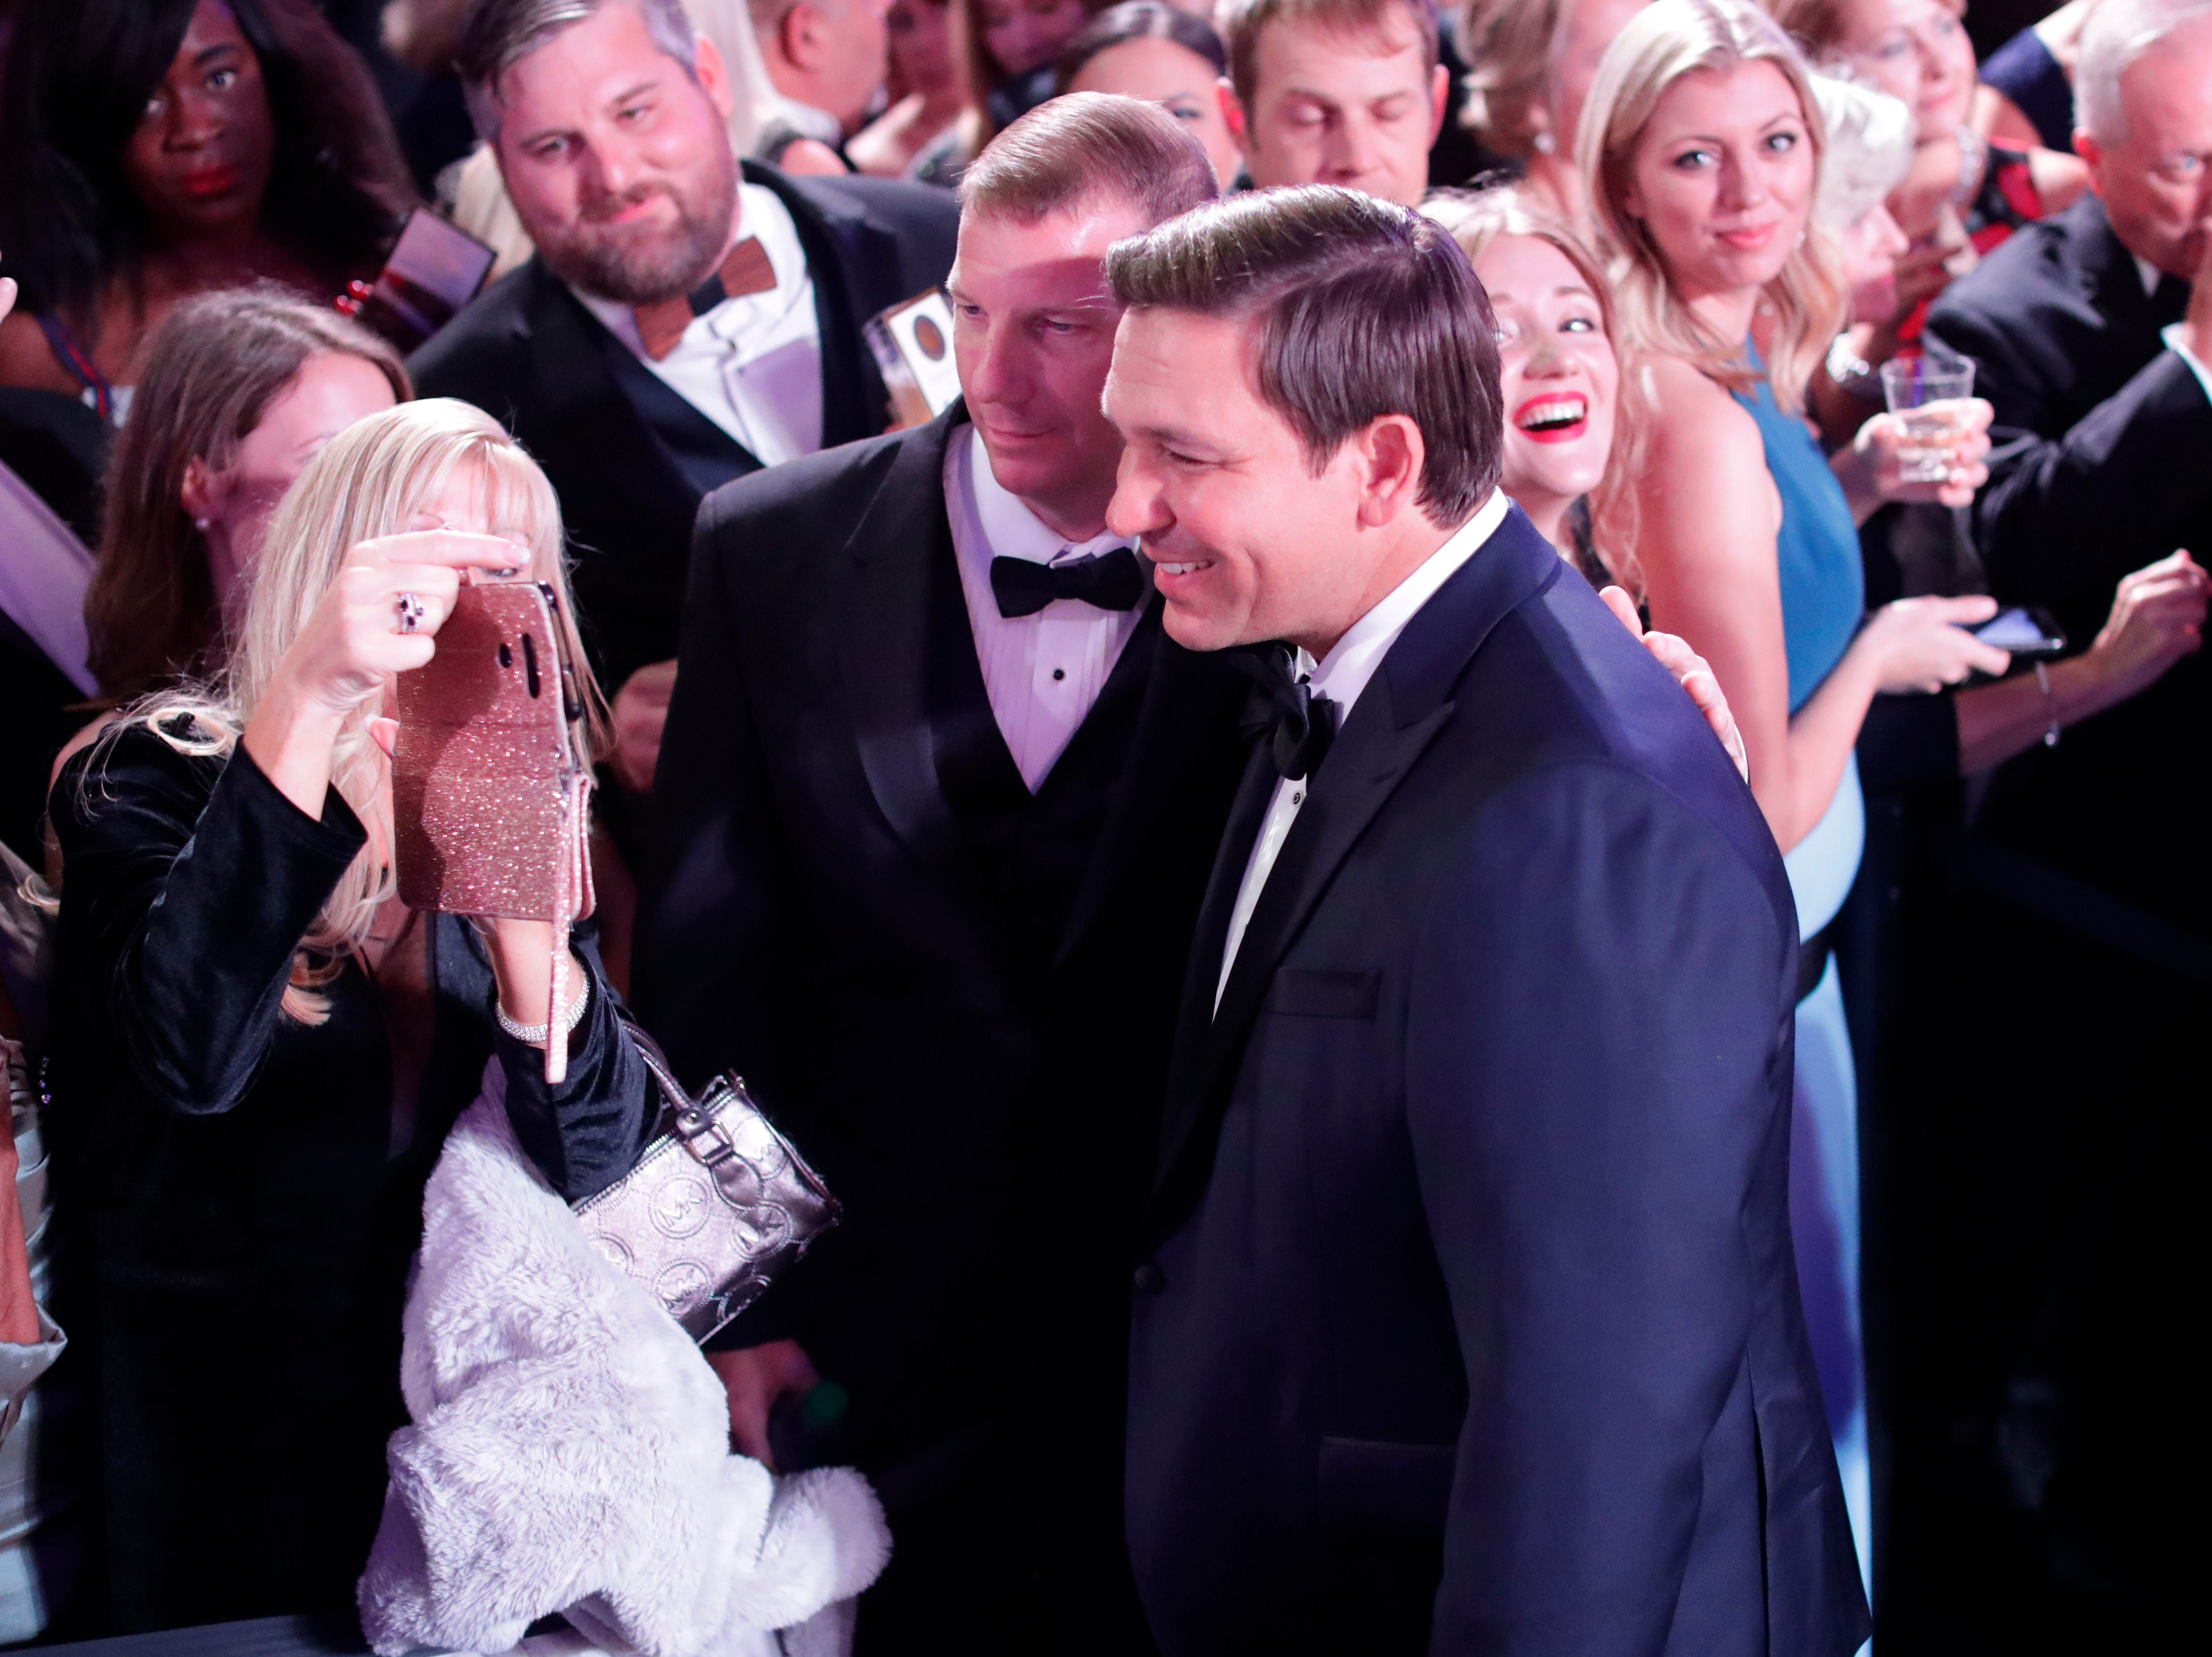 Hundreds of guests from all over Florida attend Florida's 46th Governor's Inaugural Ball at the Tucker Civic Center, Tuesday, Jan. 8, 2019. Gov. Ron DeSantis takes a photo with a guest at the ball.